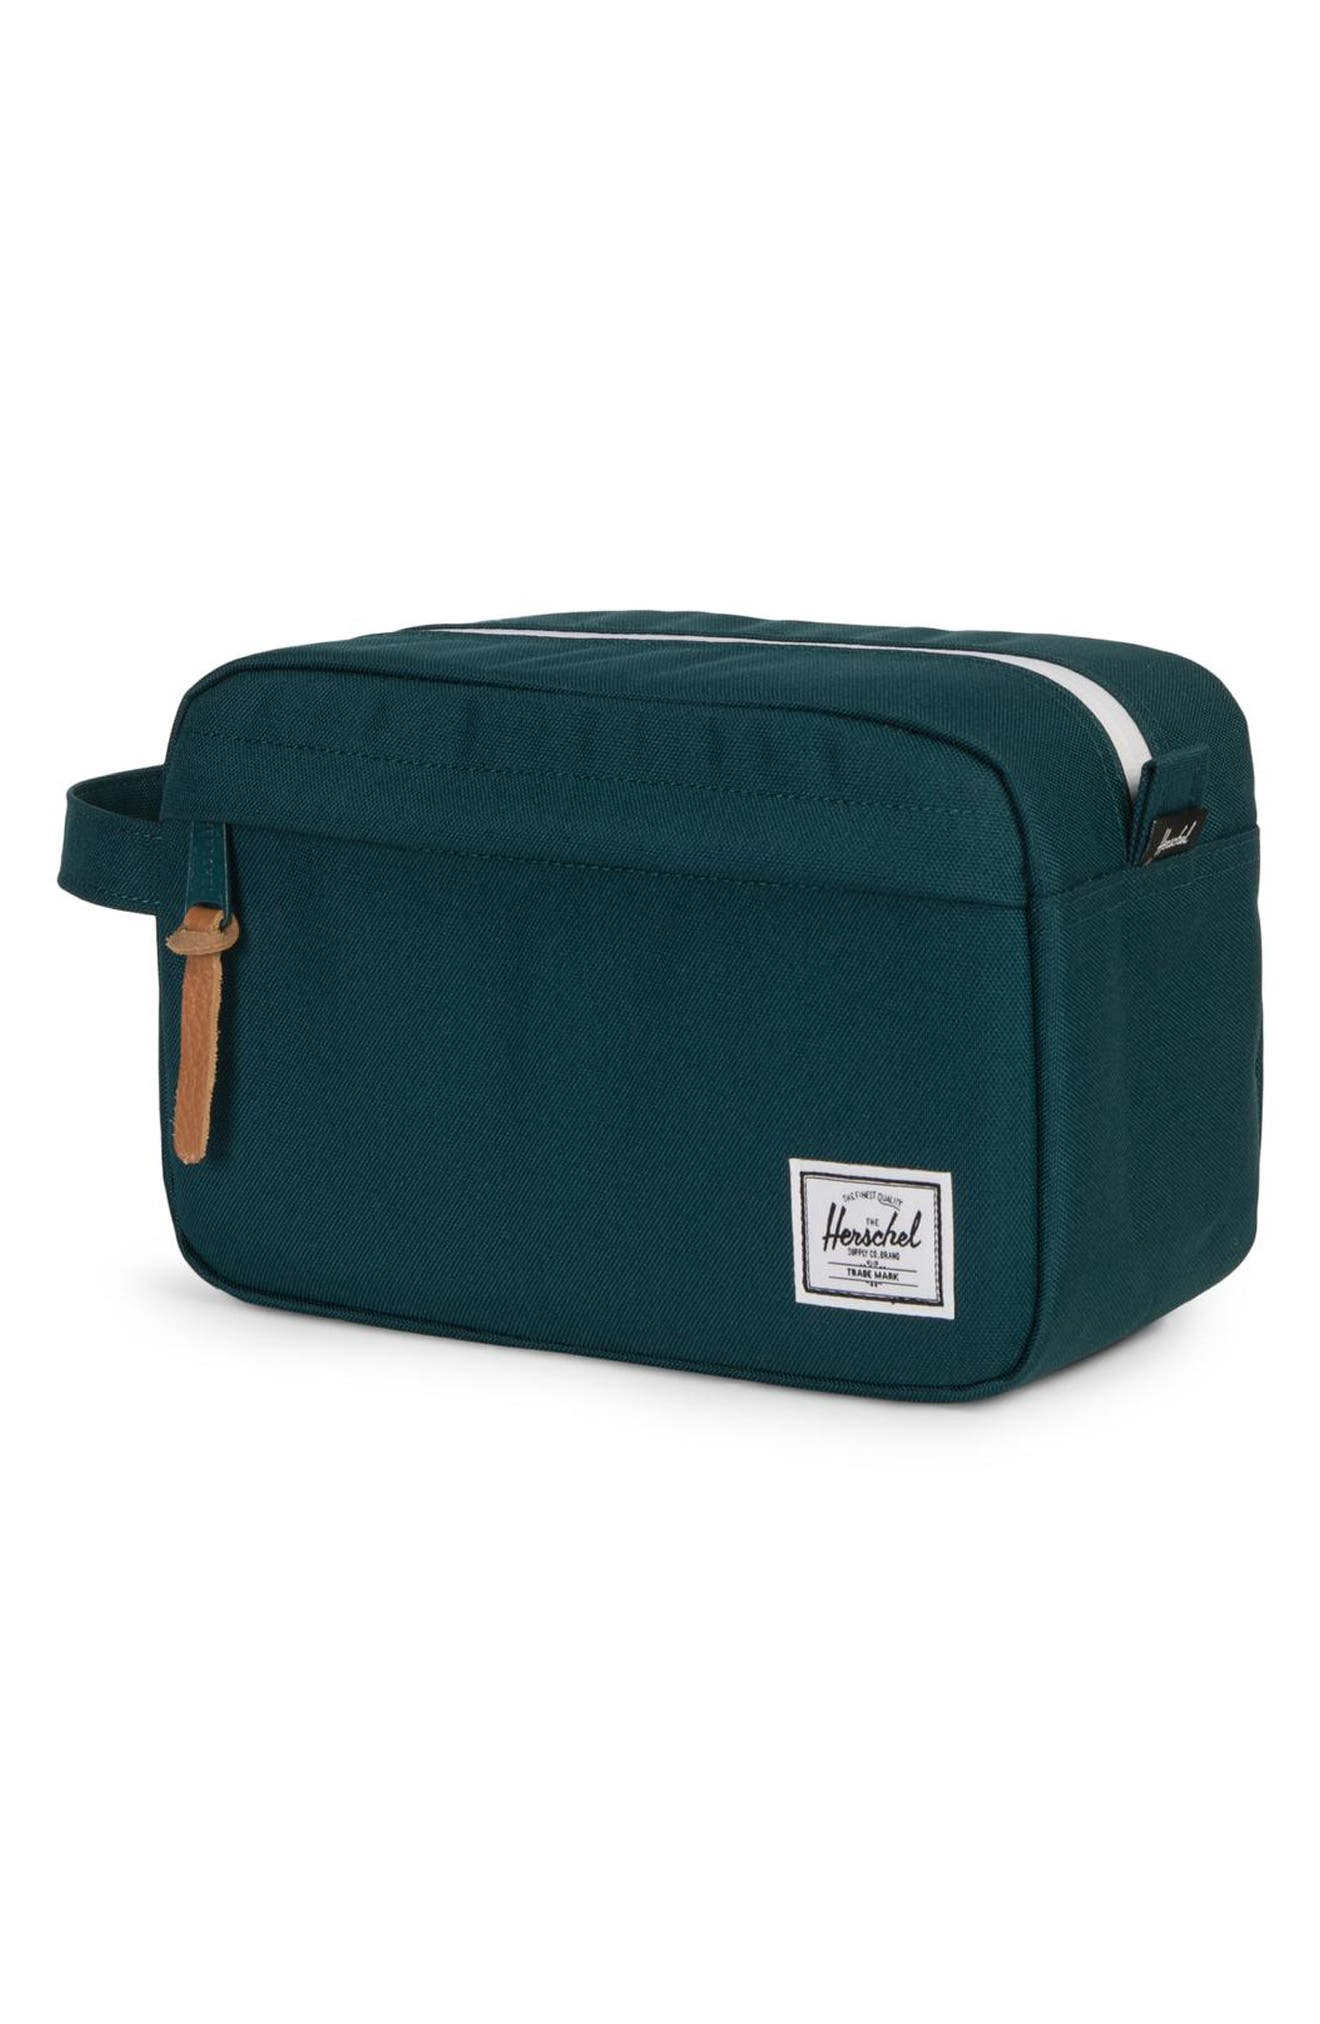 'Chapter' Toiletry Case,                             Alternate thumbnail 3, color,                             DEEP TEAL